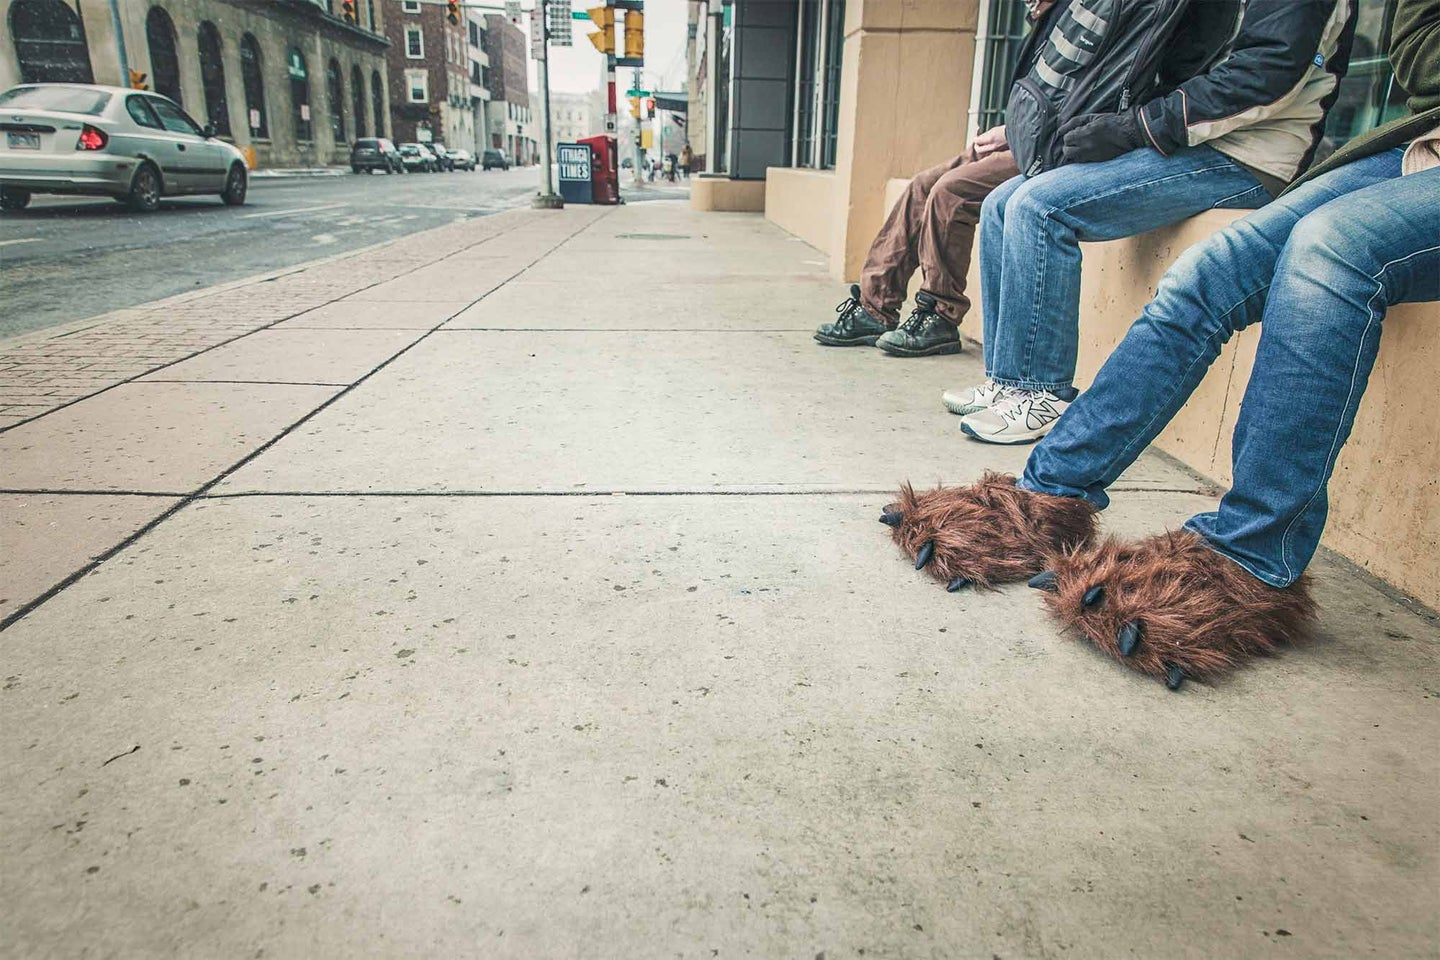 People on the street wearing funny slippers